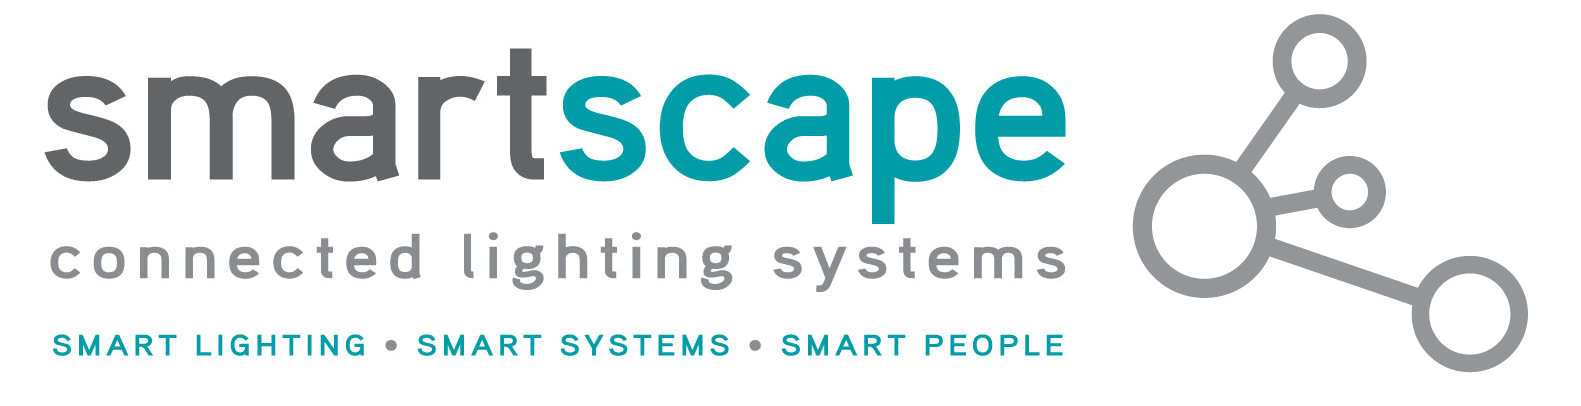 Smartscape Connected Lighting Systems